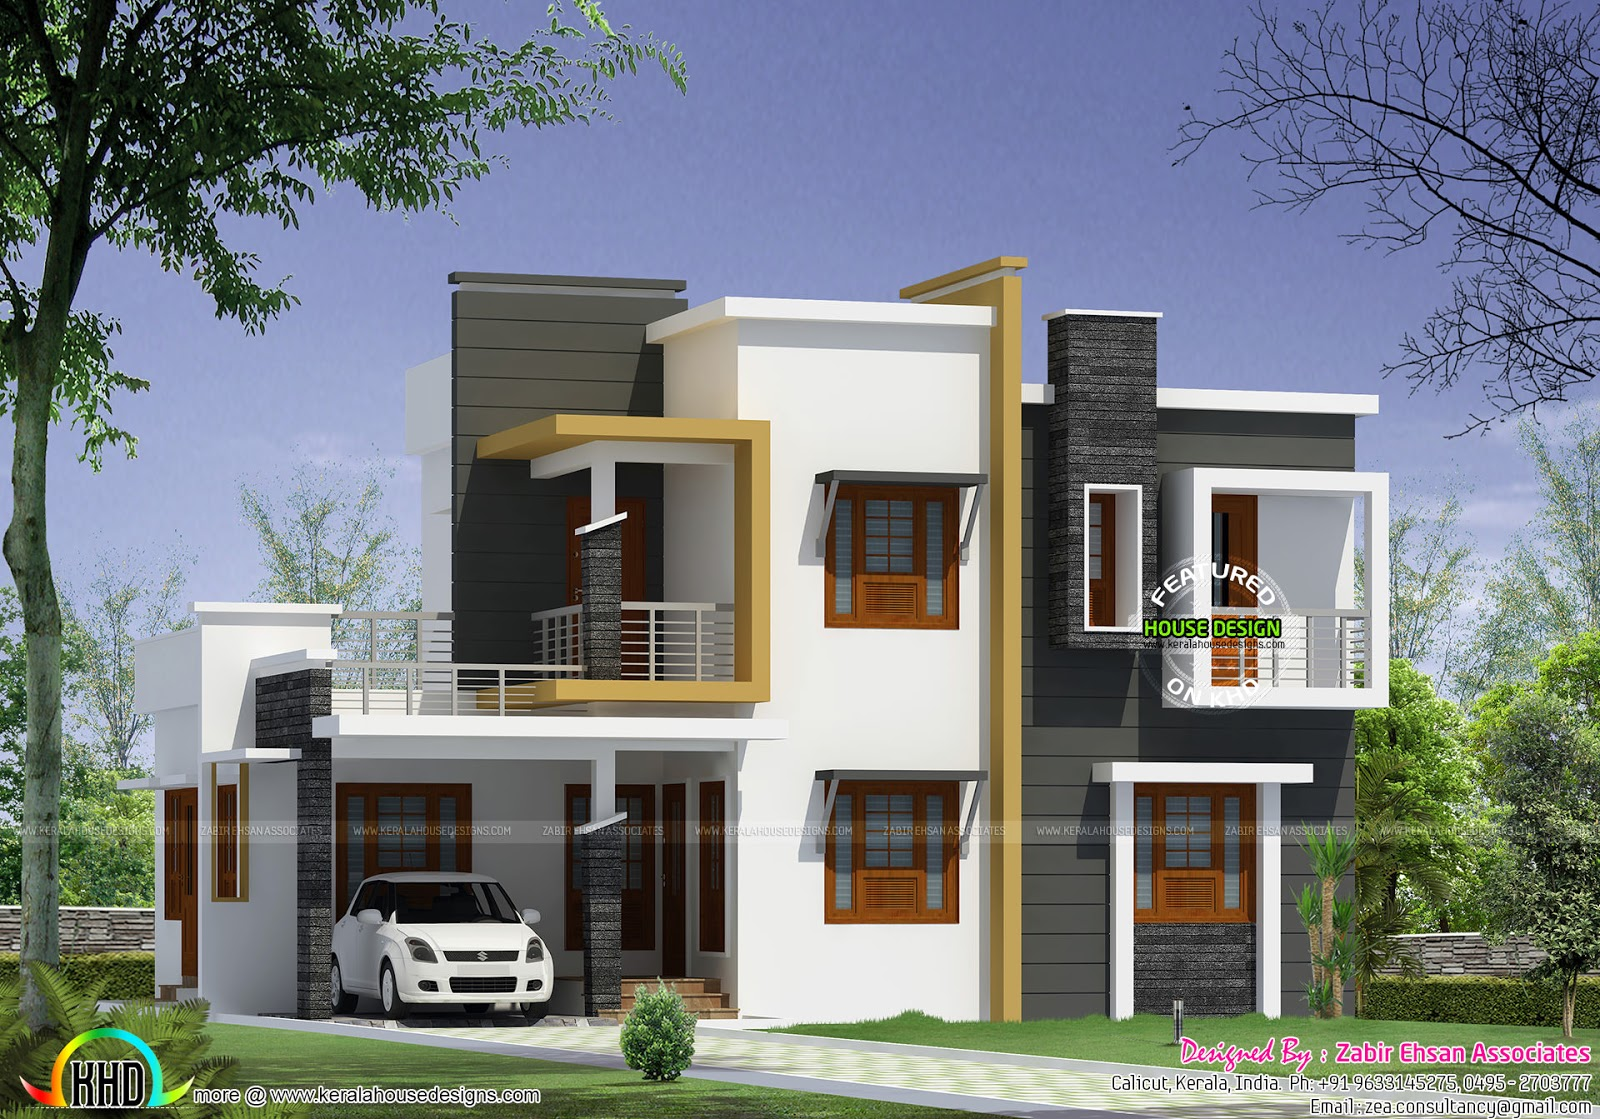 Box type modern house plan kerala home design and floor for Contemporary house floor plans